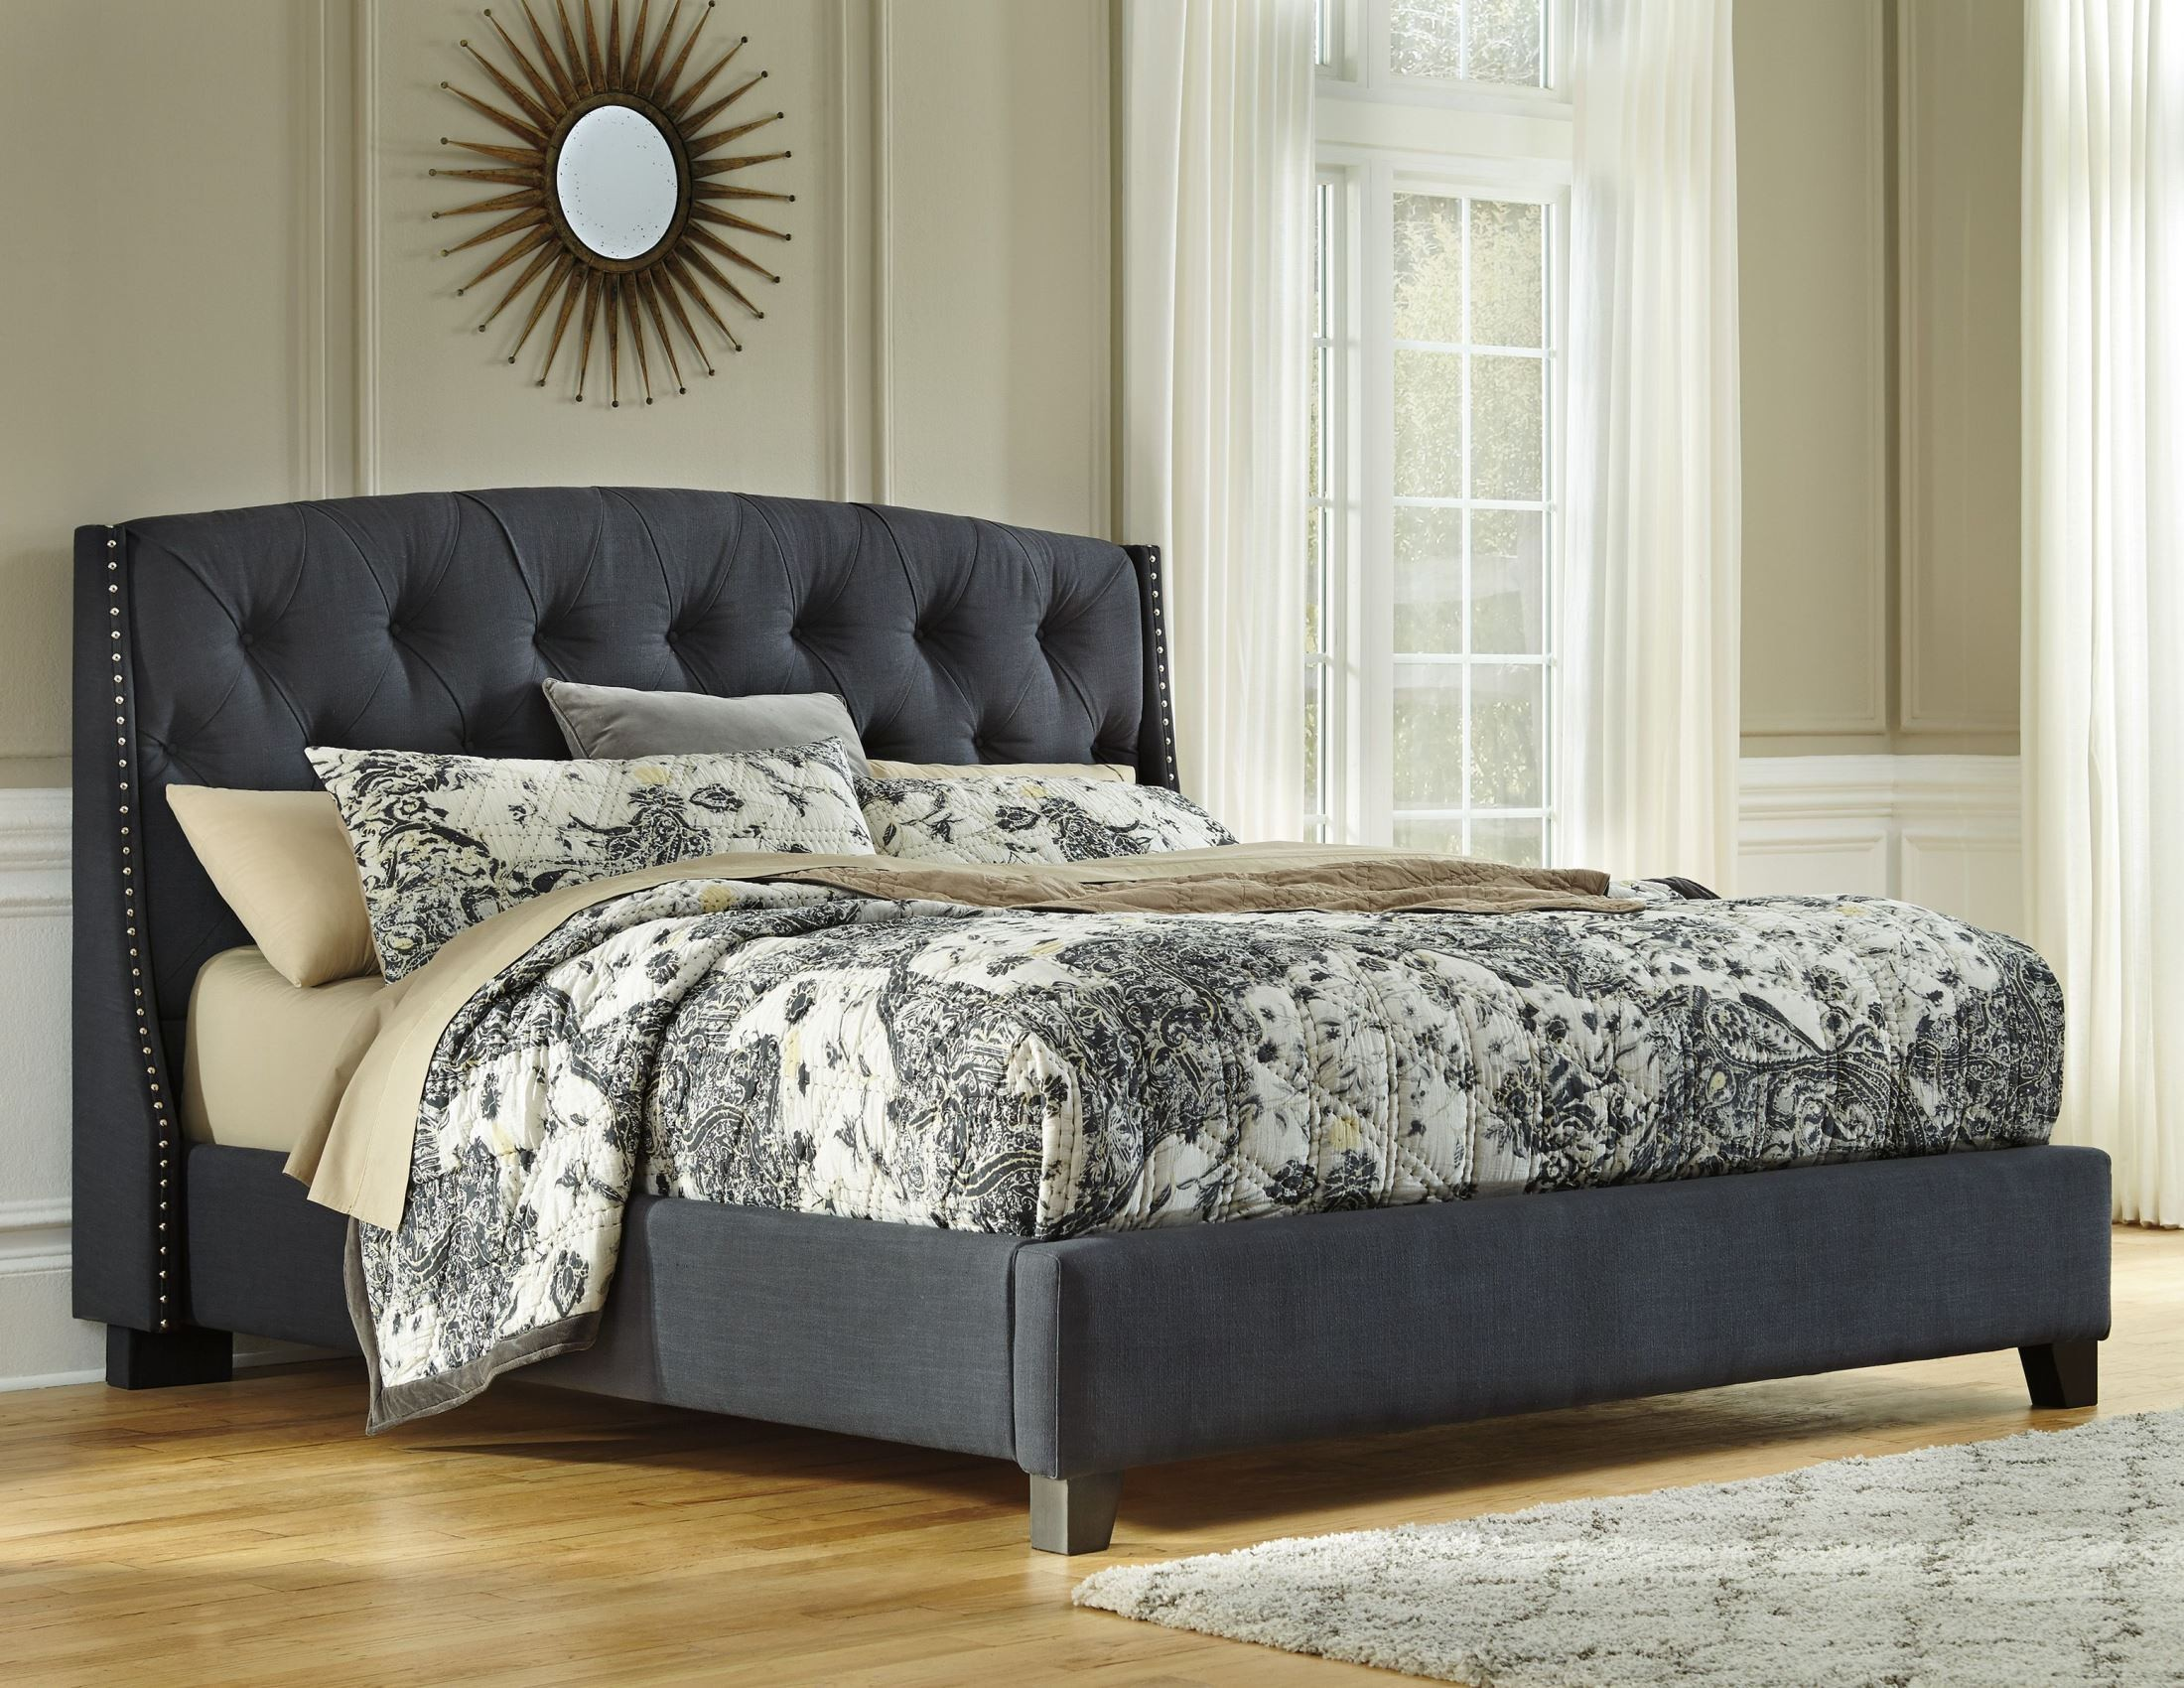 king upholstered platform bed from ashley . cal king upholstered platform bed from ashley (b